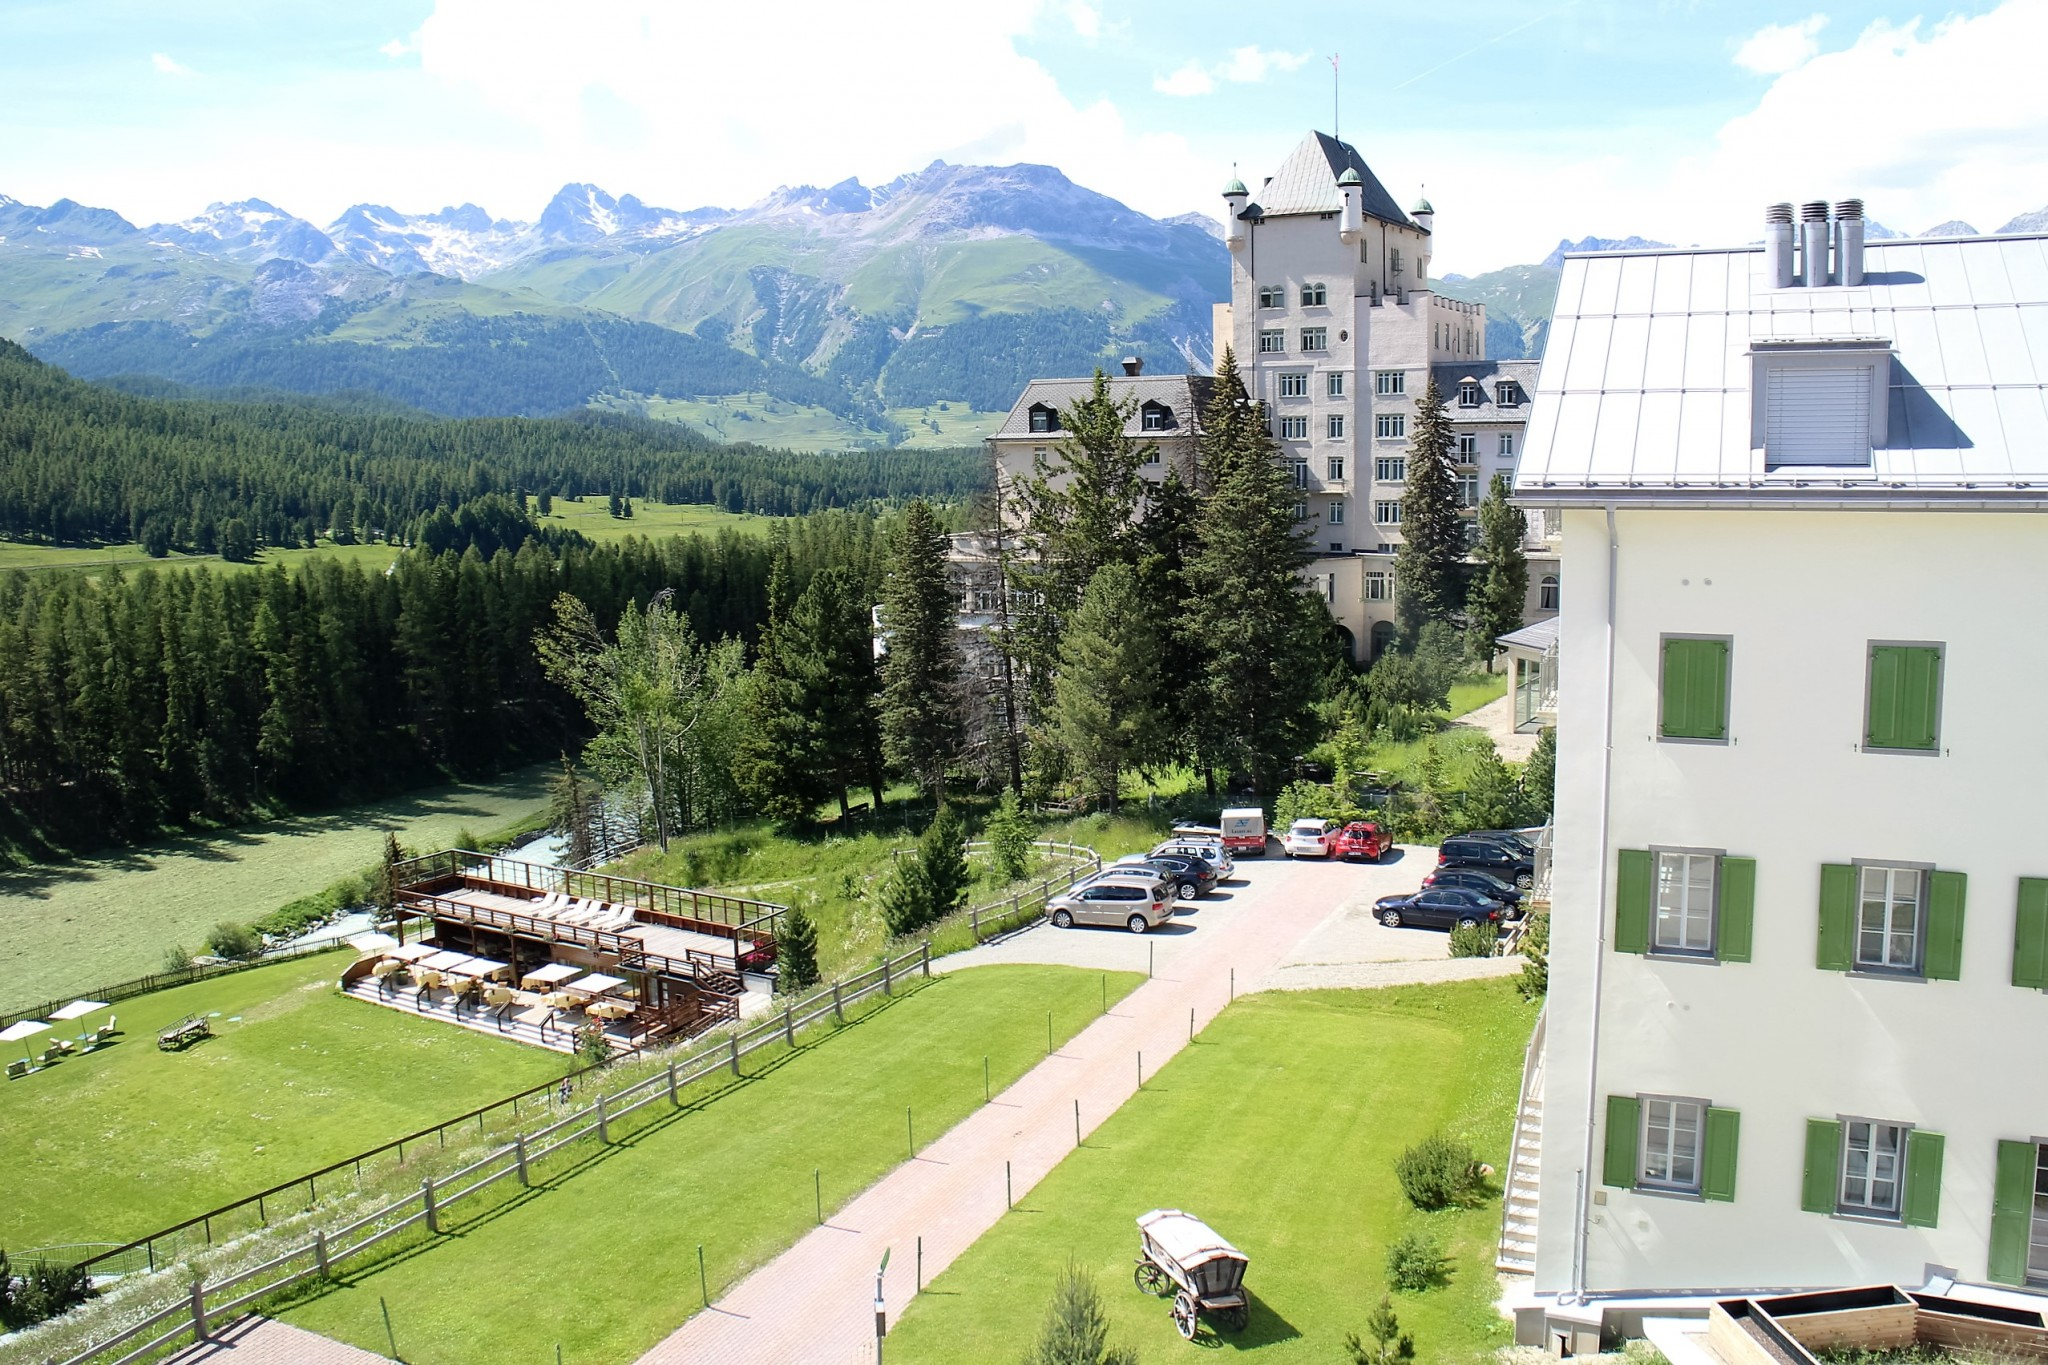 Grand Hotel Kronenhof view from room